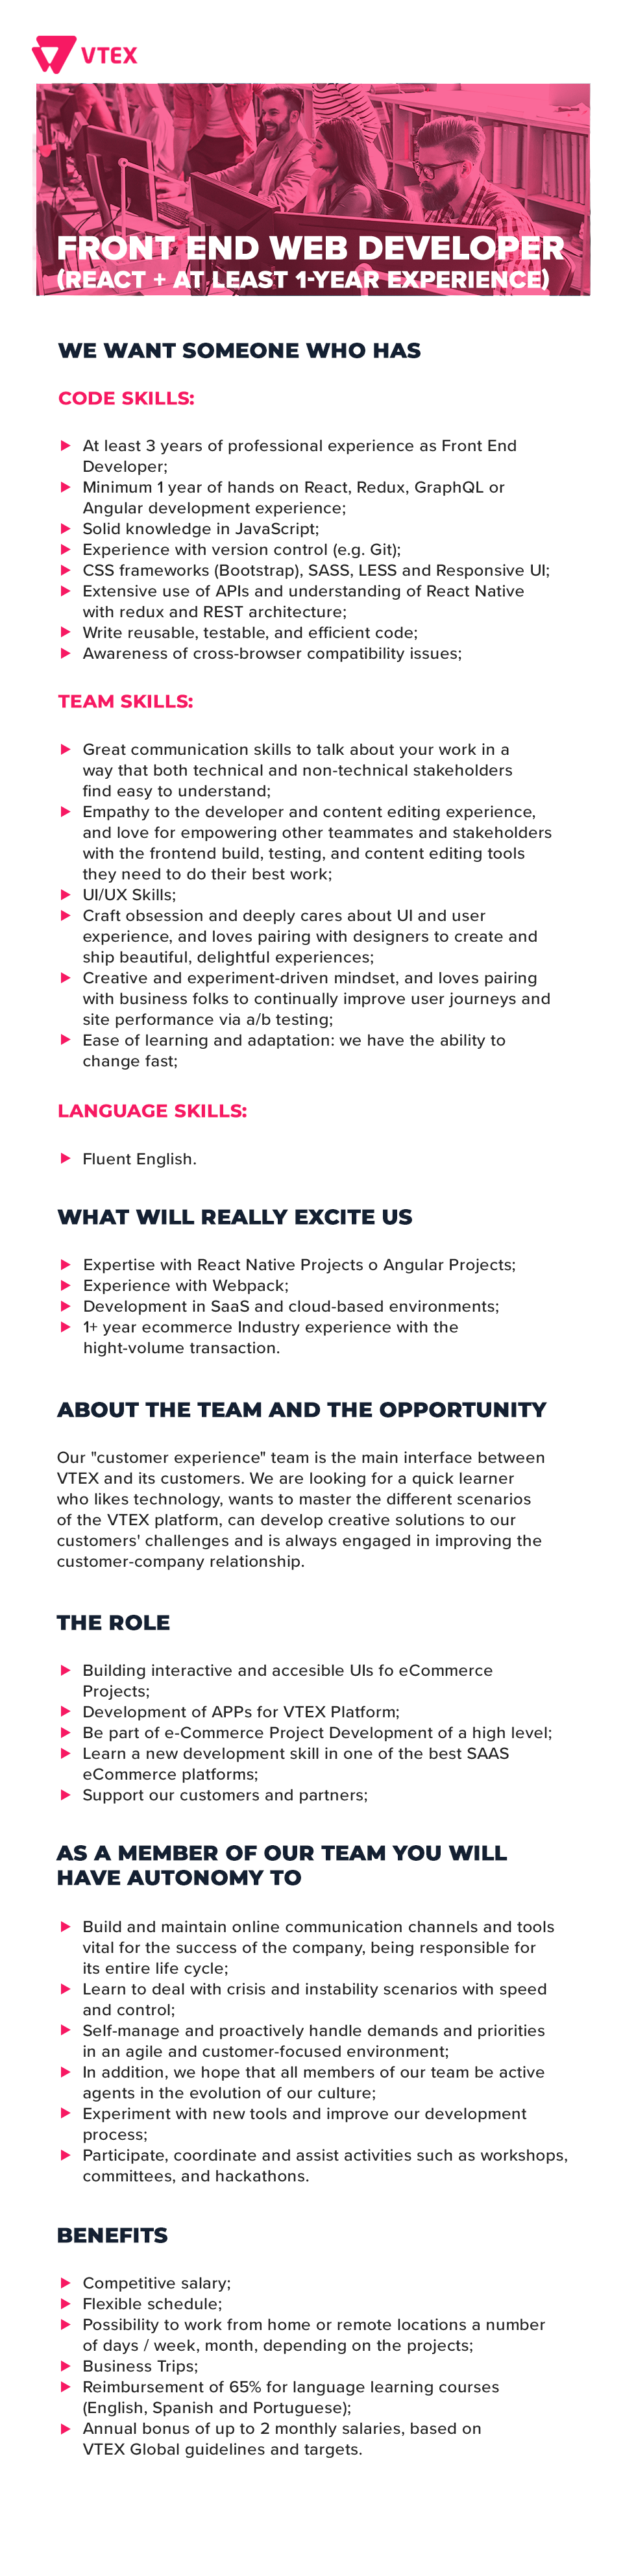 WE WANT SOMEONE WHO HAS  Code Skills:  At least 3 years of professional experience as Front End Developer; Minimum 1 year of hands on React, Redux, GraphQL or Angular development experience; Solid knowledge in JavaScript; Experience with version control (e.g. Git); CSS frameworks (Bootstrap), SASS, LESS and Responsive UI; Extensive use of APIs and understanding of React Native with redux and REST architecture; Write reusable, testable, and efficient code; Awareness of cross-browser compatibility issues;  Team Skills:   Great communication skills to talk about your work in a way that both technical and non-technical stakeholders find easy to understand; Empathy to the developer and content editing experience, and love for empowering other teammates and stakeholders with the frontend build, testing, and content editing tools they need to do their best work;  UI/UX Skills:   Craft obsession and deeply cares about UI and user experience, and loves pairing with designers to create and ship beautiful, delightful experiences; Creative and experiment-driven mindset, and loves pairing with business folks to continually improve user journeys and site performance via a/b testing; Ease of learning and adaptation: we have the ability to change fast;  Language Skills:   Fluent English;  WHAT WILL REALLY EXCITE US   Expertise with React Native Projects o Angular Projects; Experience with Webpack; Development in SaaS and cloud-based environments; 1+ year eCcommerce Industry experience with the hight-volume transaction;   ABOUT THE TEAM AND THE OPPORTUNITY Our